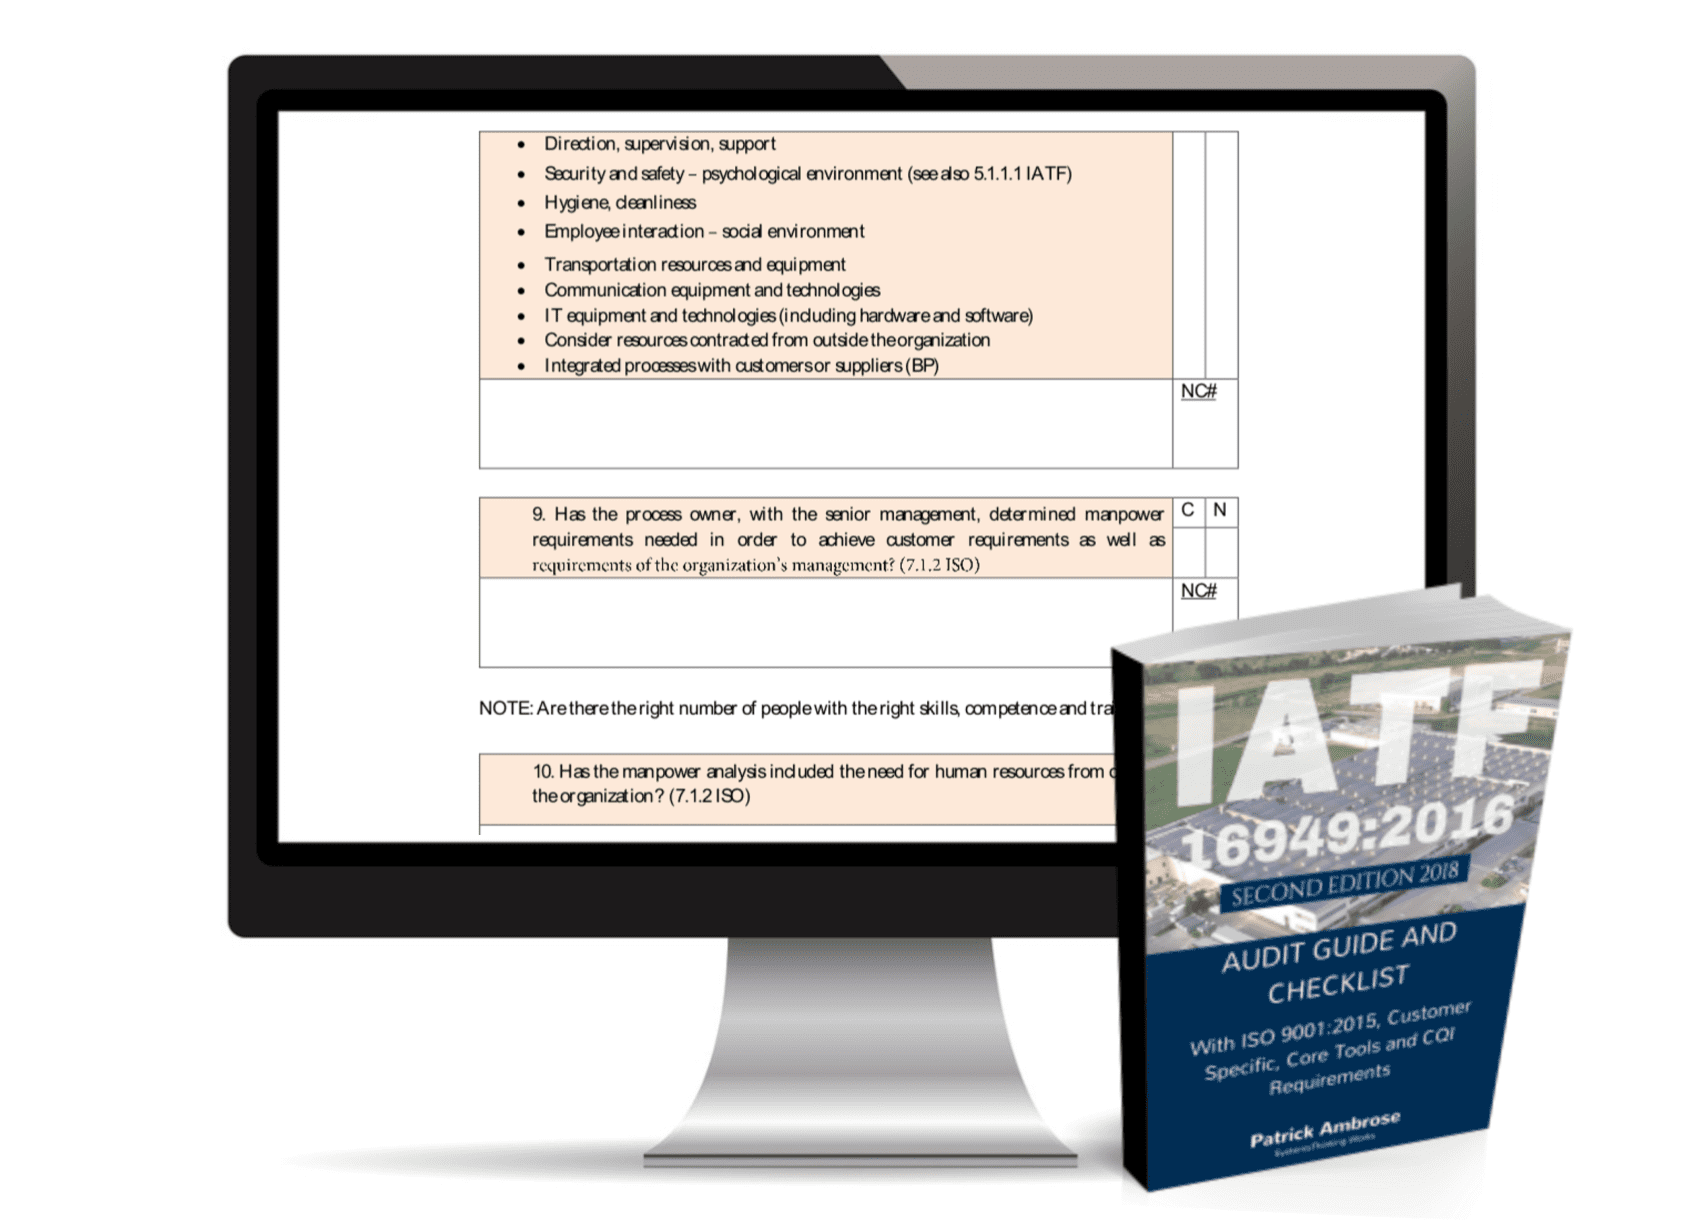 IATF Audit Guide and Checklist